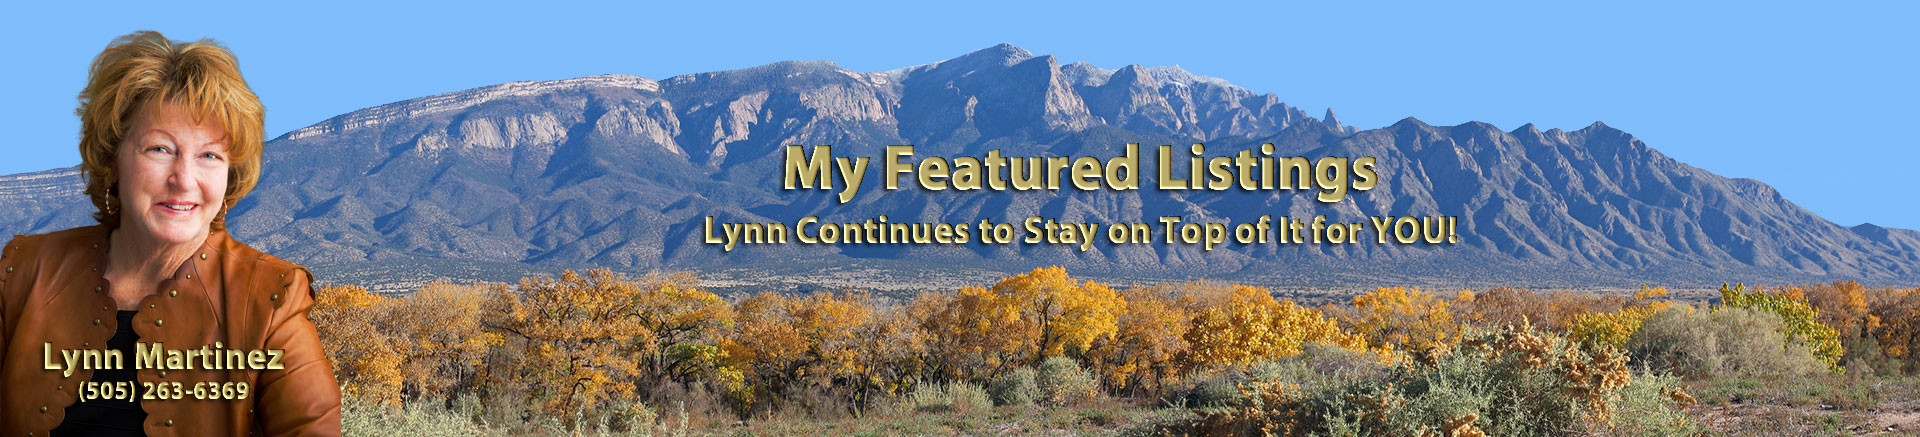 featured-listings-header